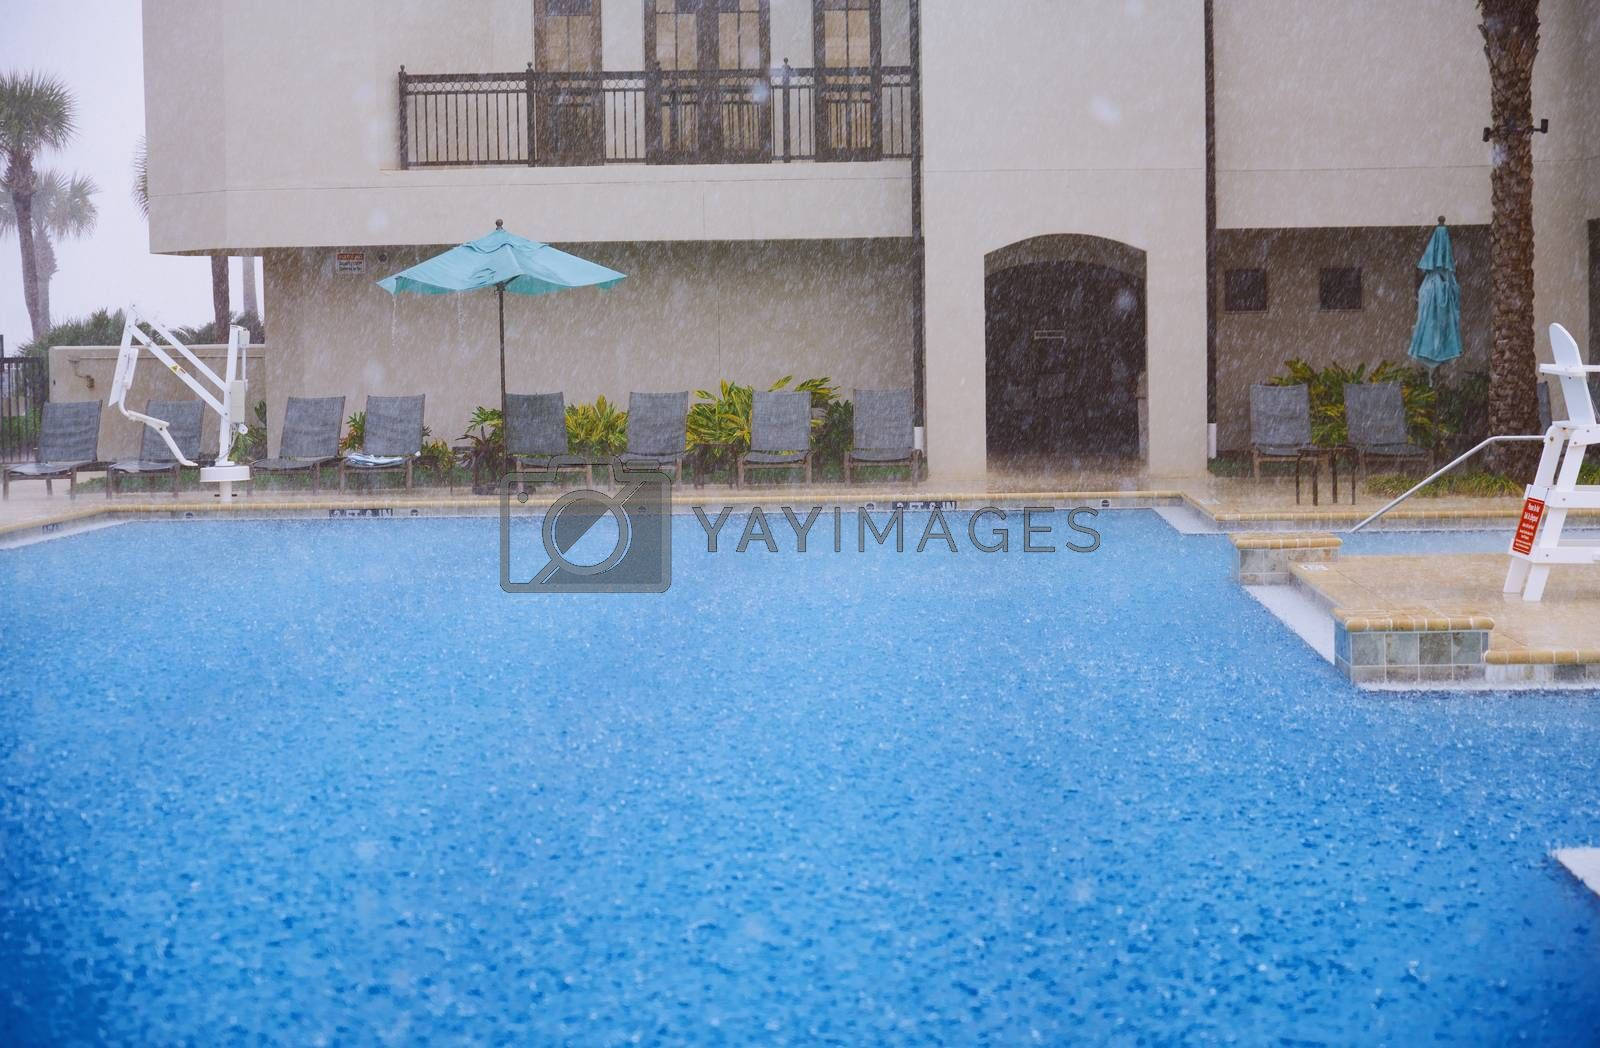 Outdoors swimming pool under the heavy rain